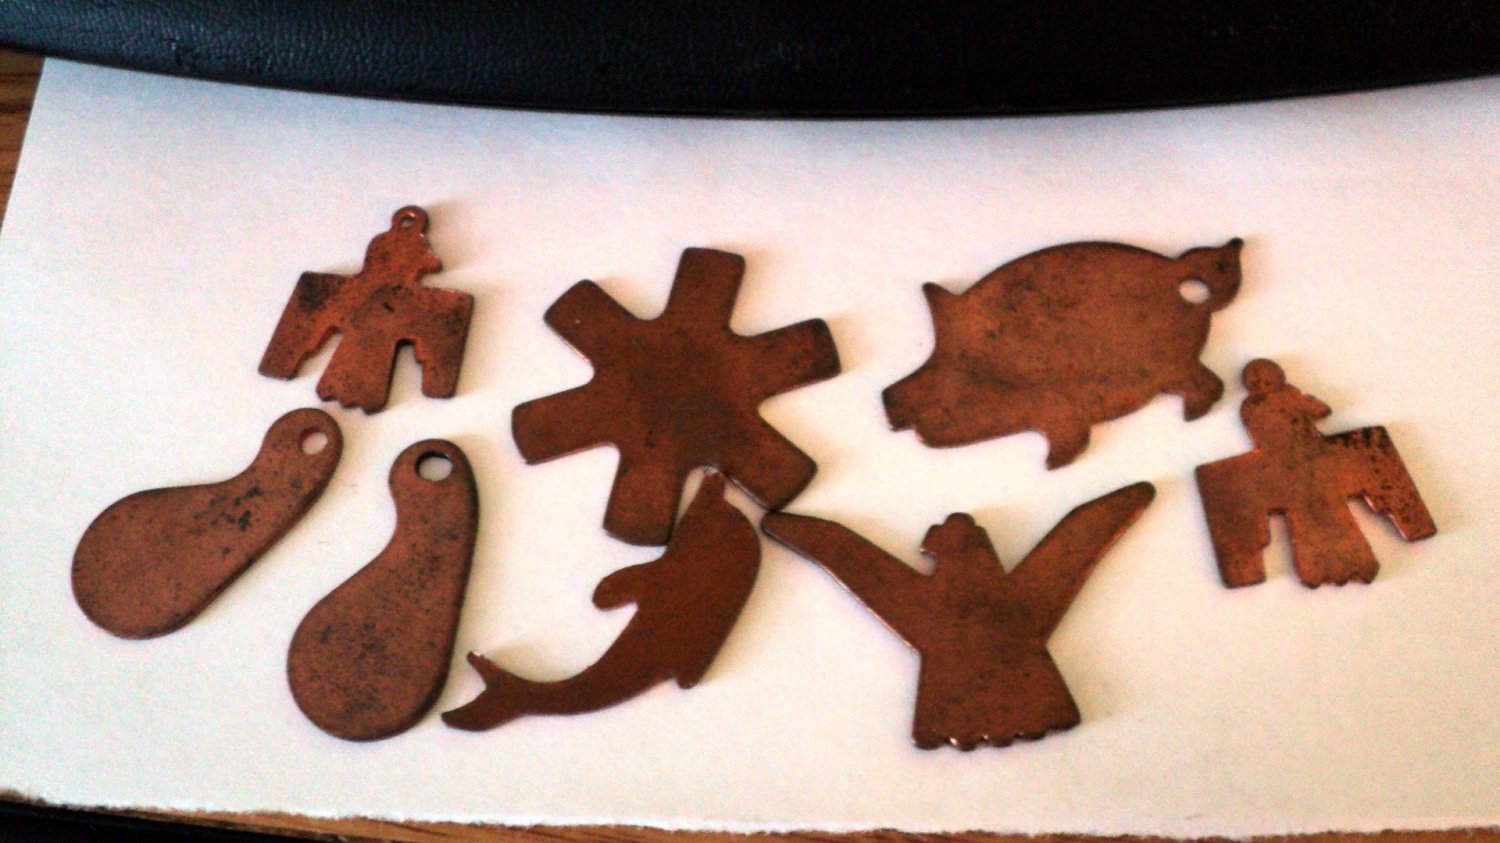 Eight Copper Cutout Charms or Pendants #00096